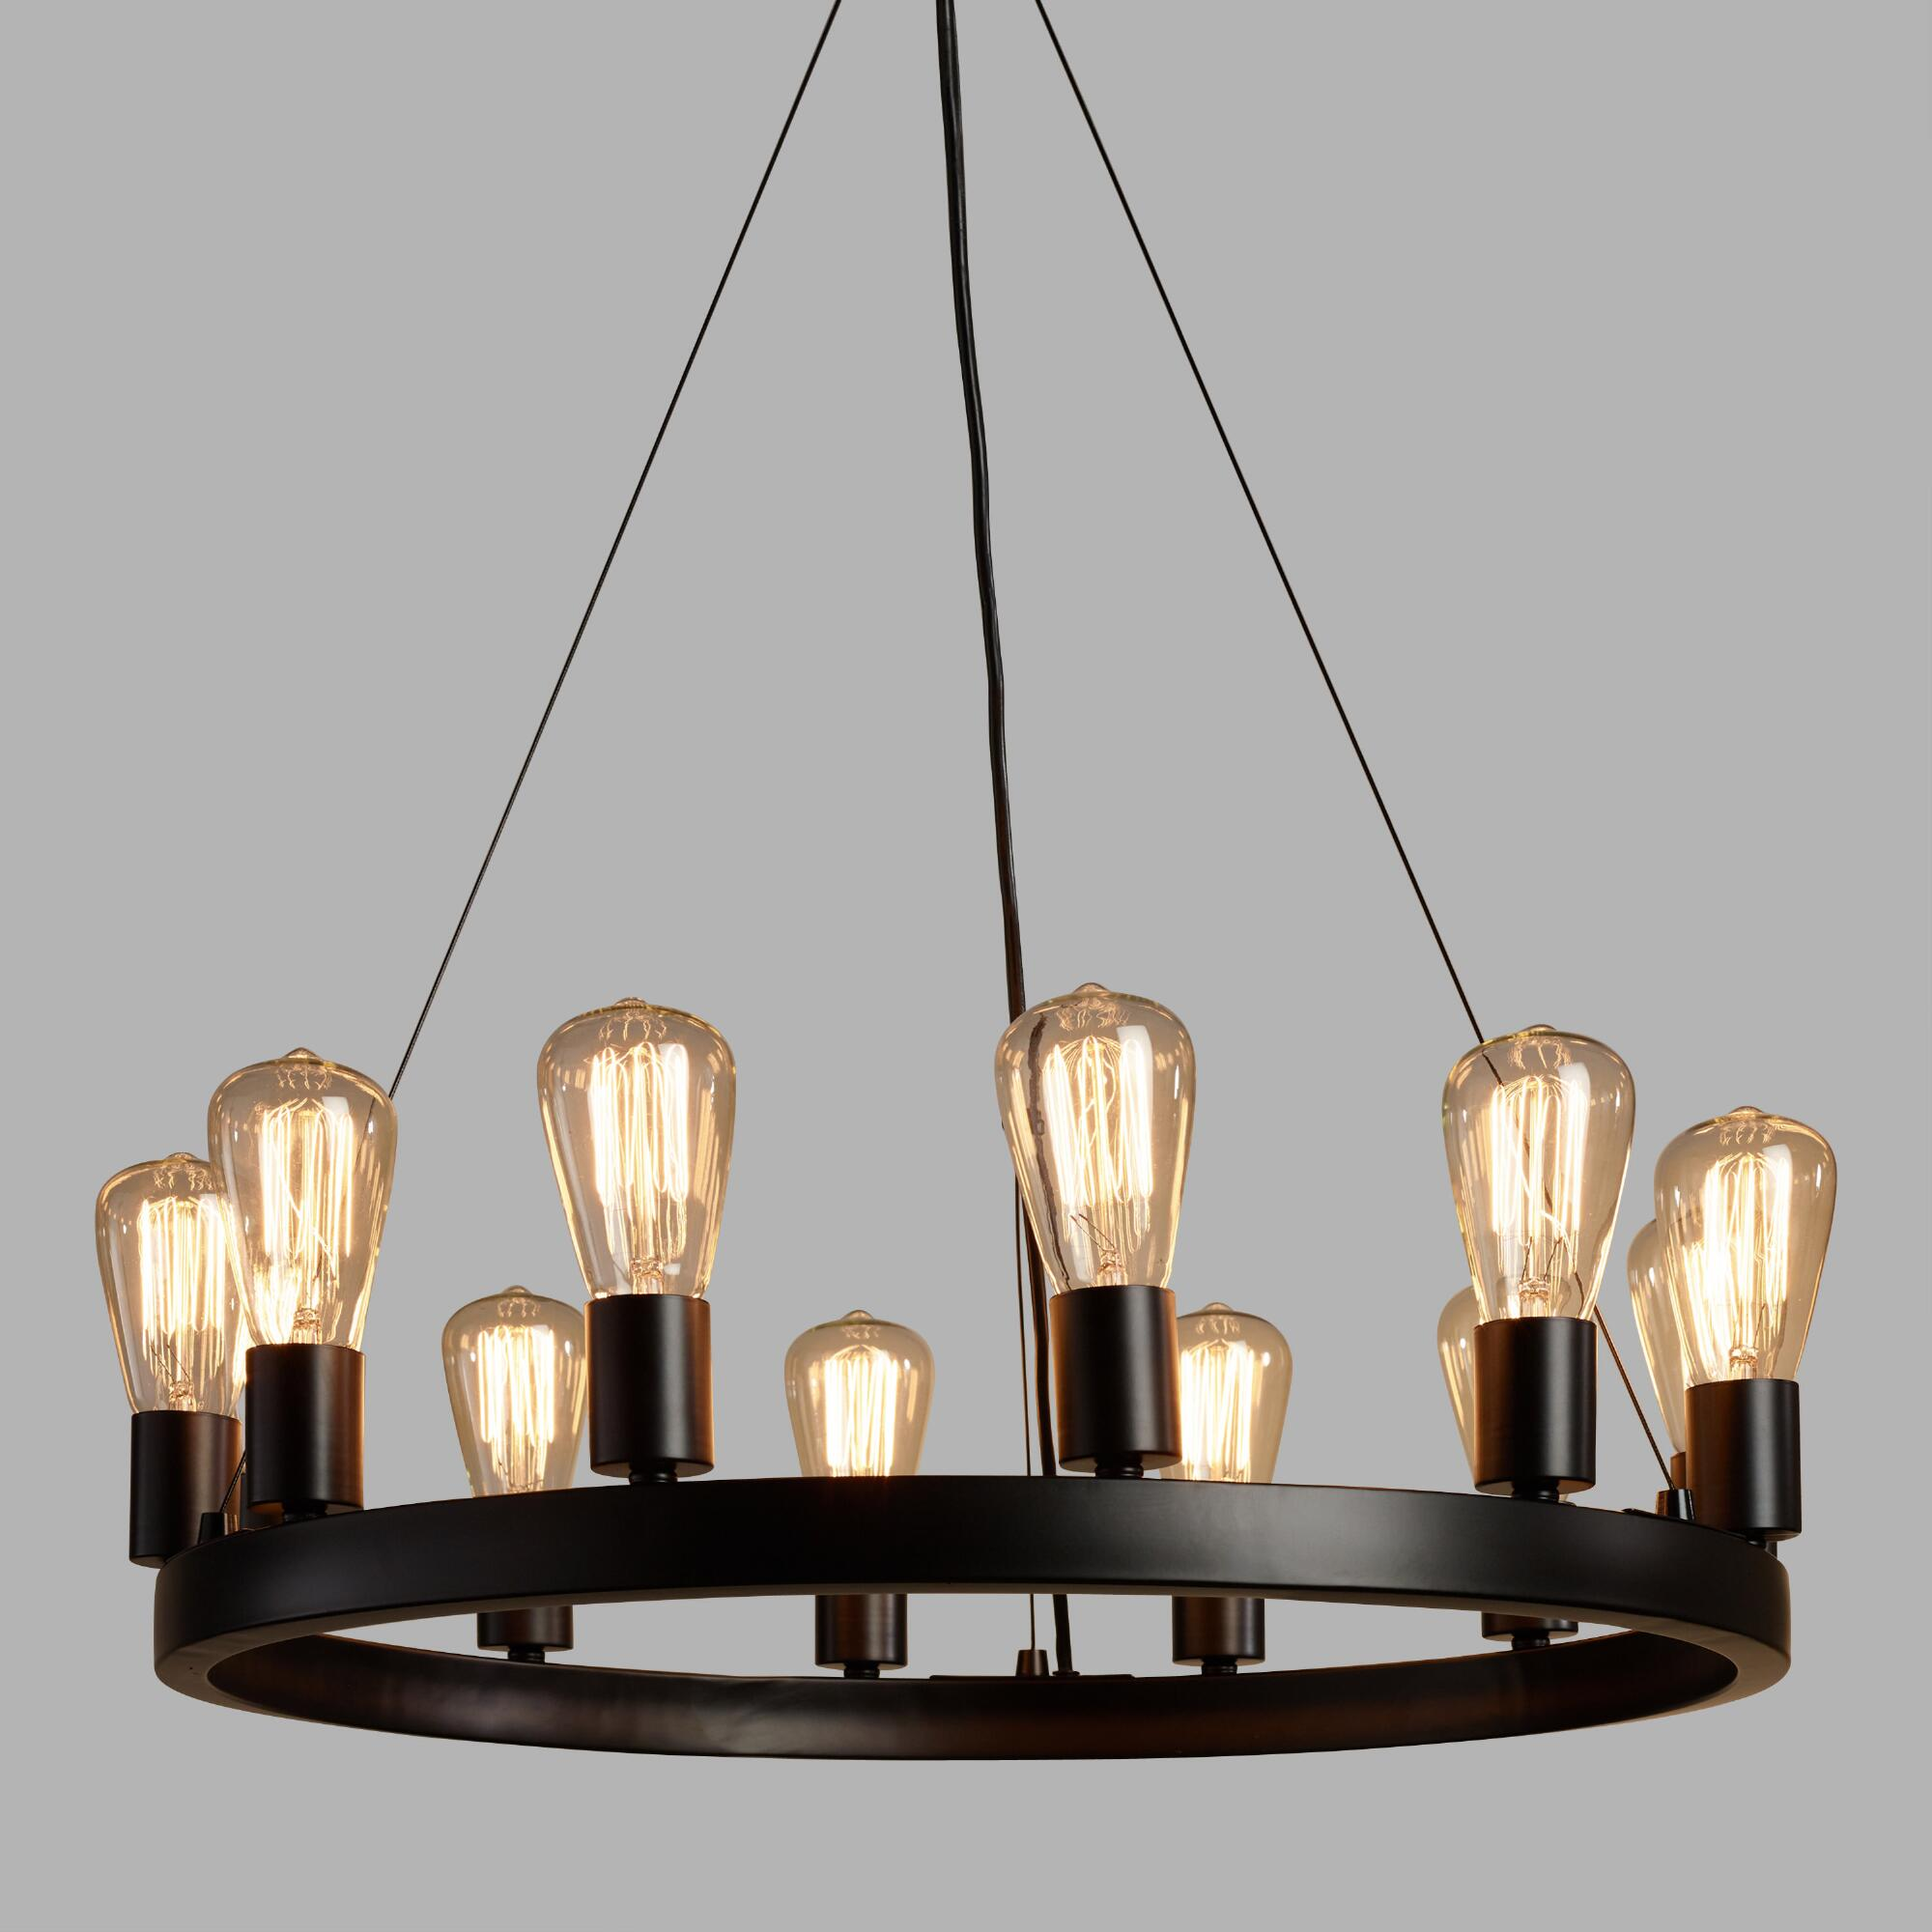 Edison chandeliers buy edison chandelier online lighting gala - Lighting and chandeliers ...